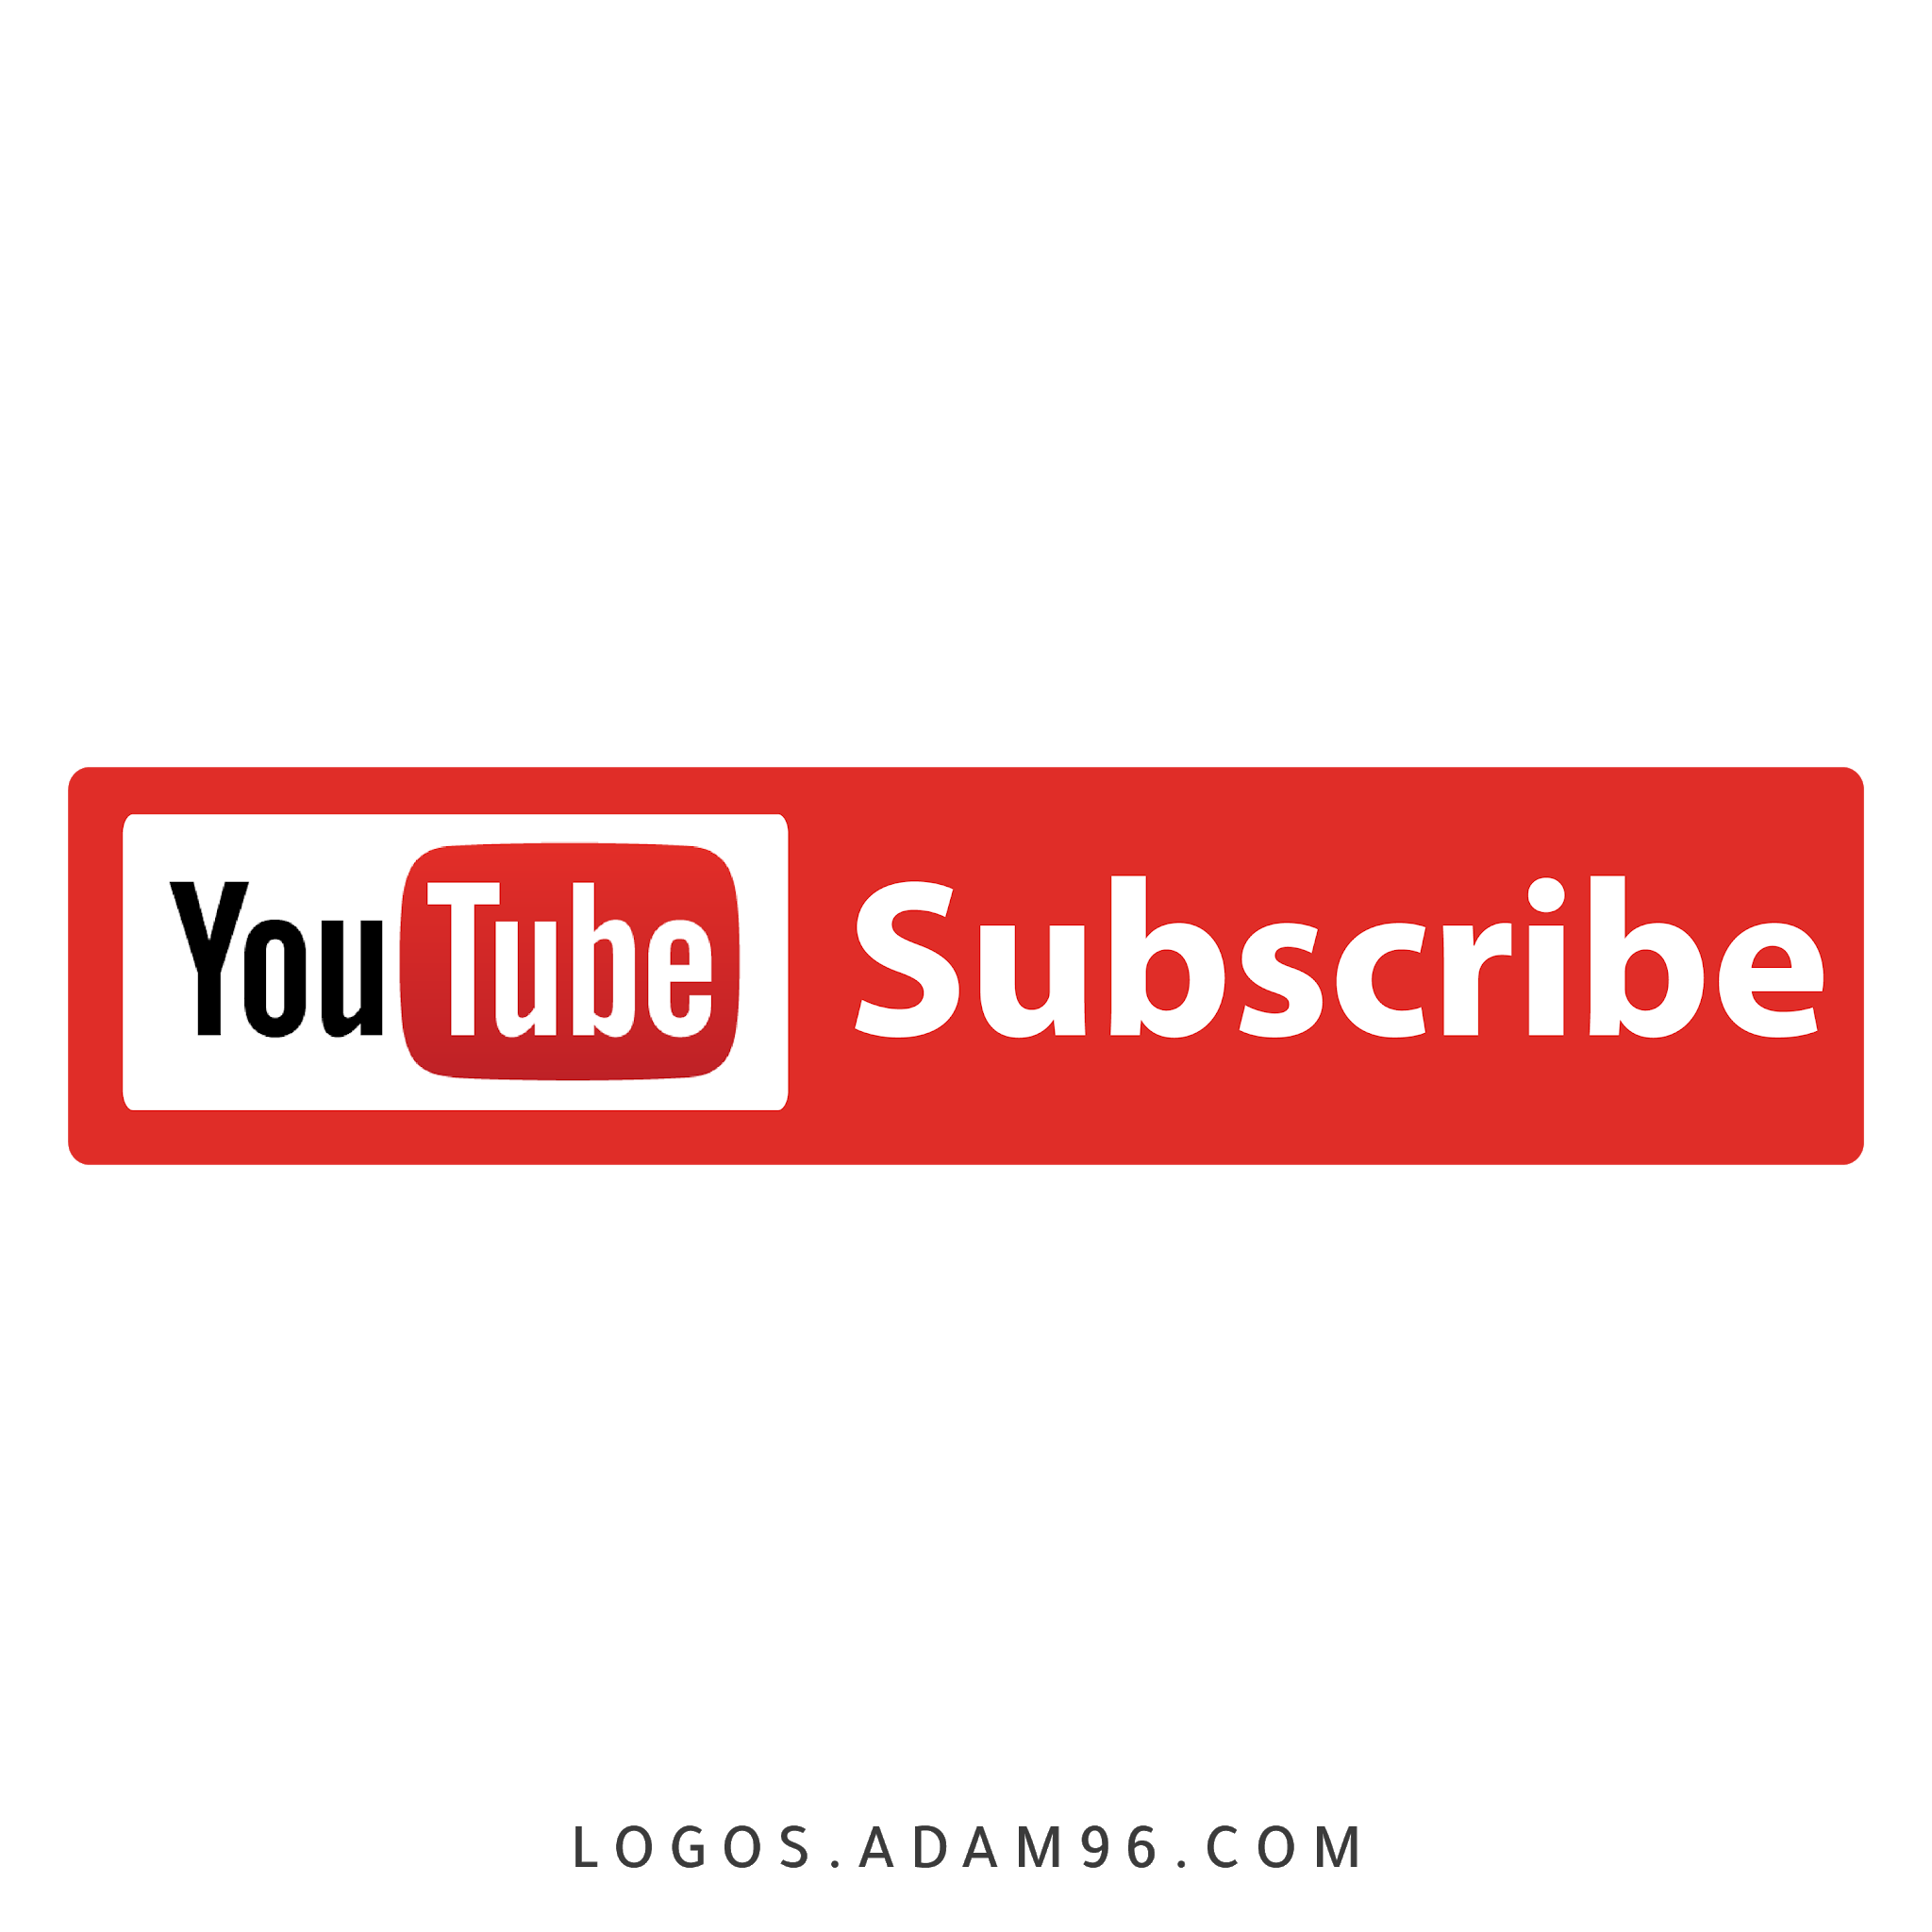 Download Subscribe YouTube Logo PNG - Free Vector